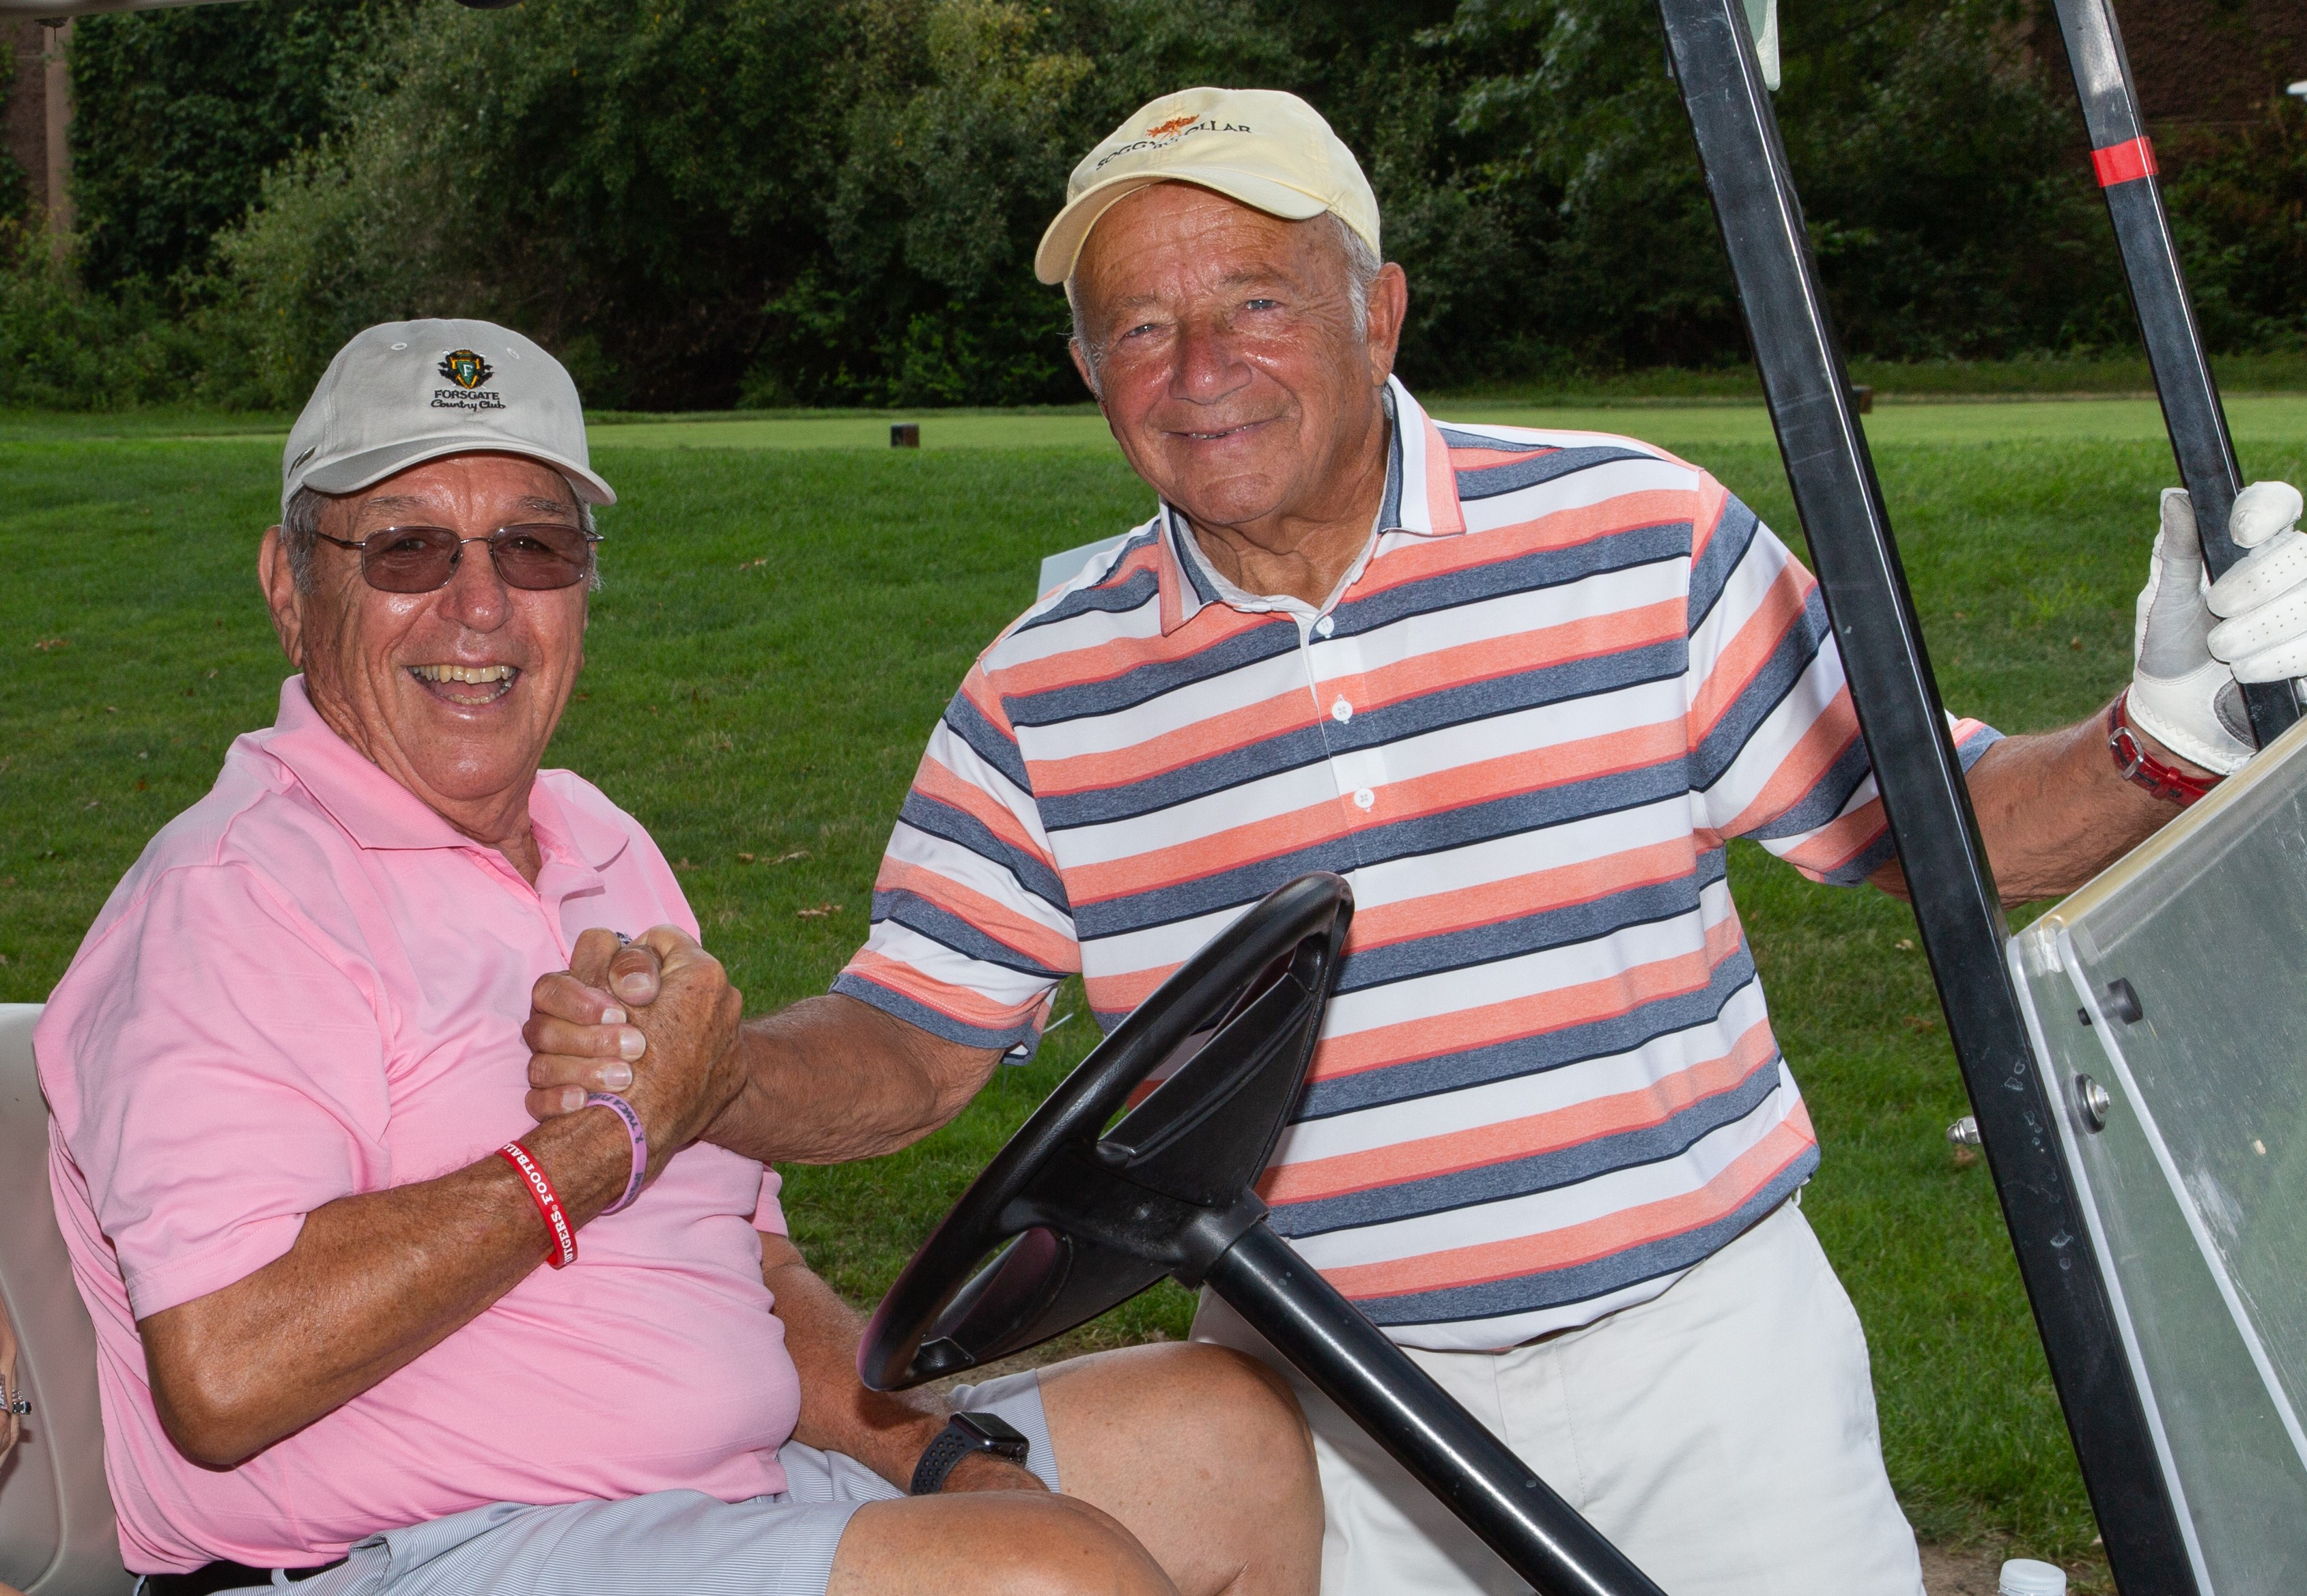 Charles J. Gatt and Martin Galuskin as they participate in the 5th Annual Gatt Golf Tournament